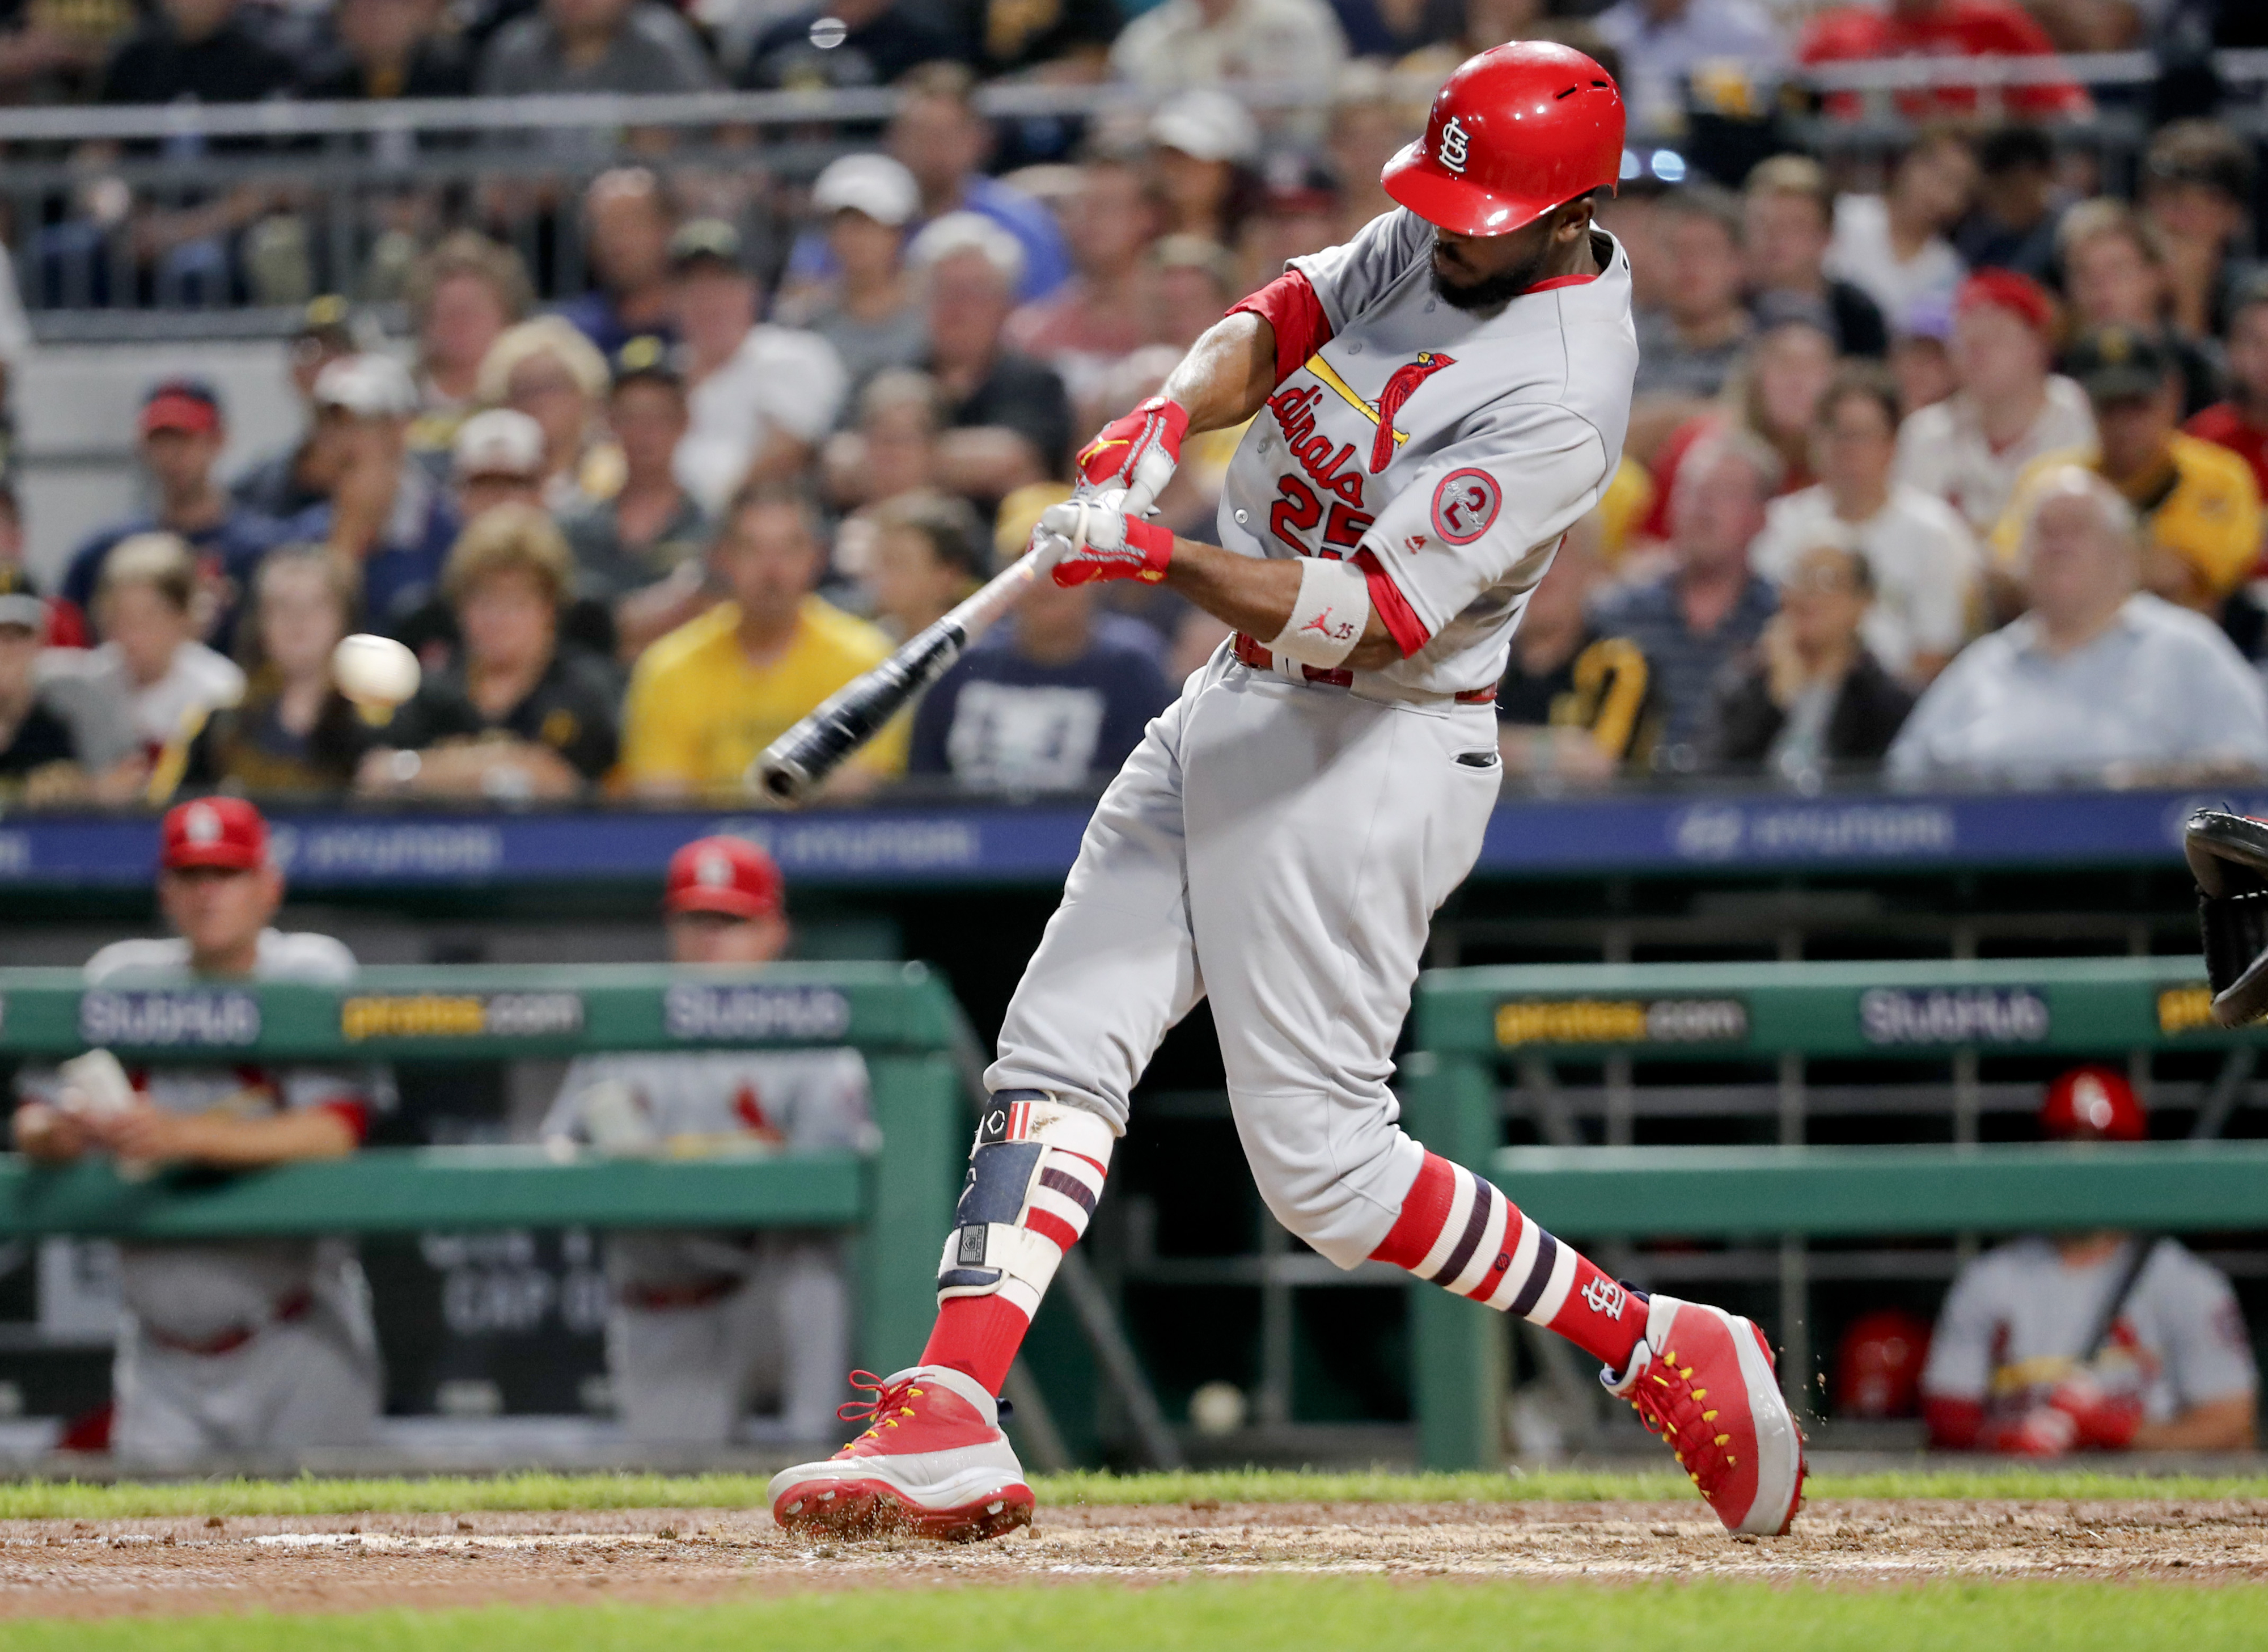 Cards outfielder Fowler breaks foot, put on disabled list